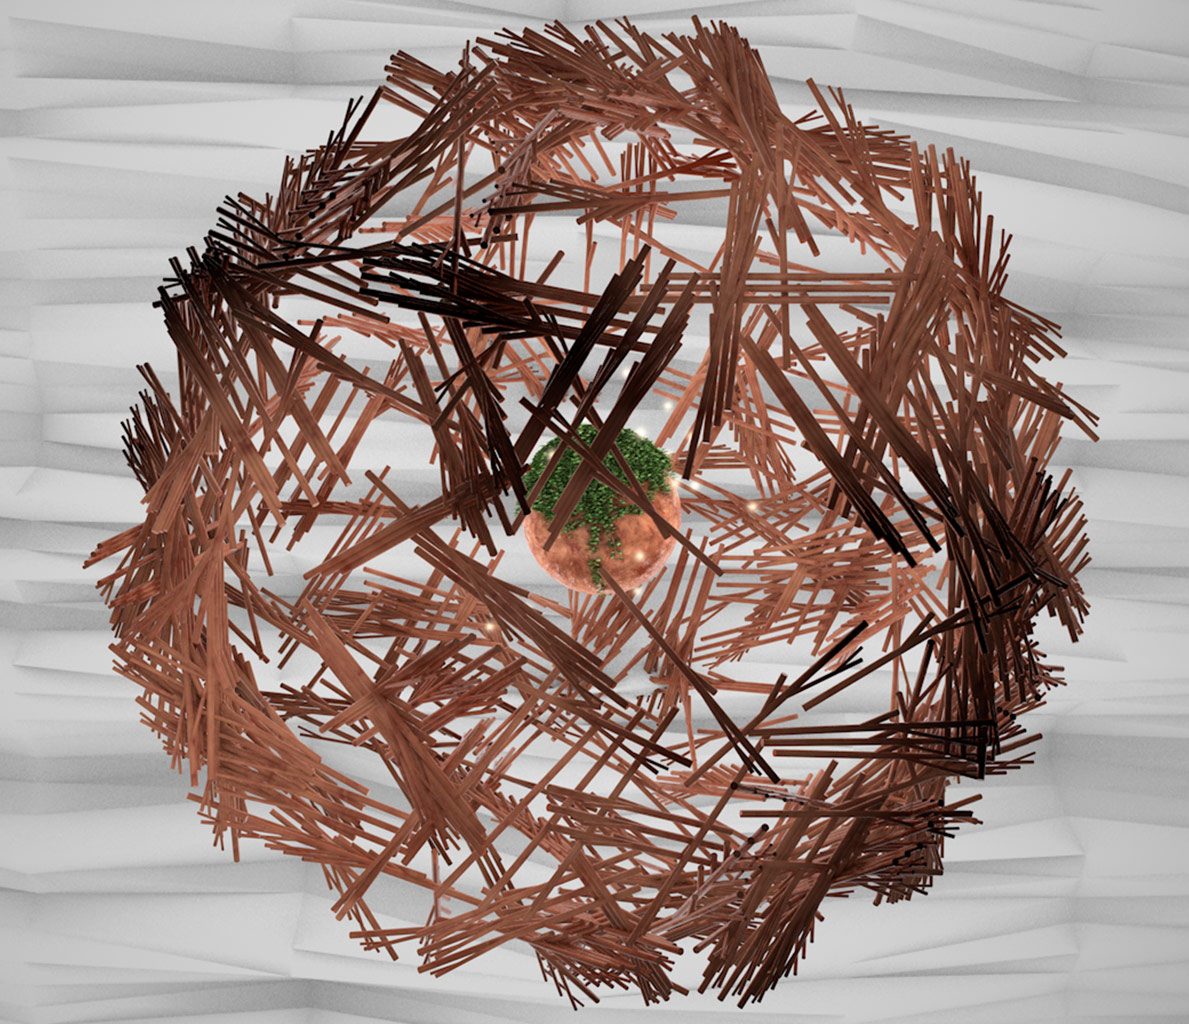 Abstract Cinema 4D Nest Animation. 3D Design, 3D Illustration.